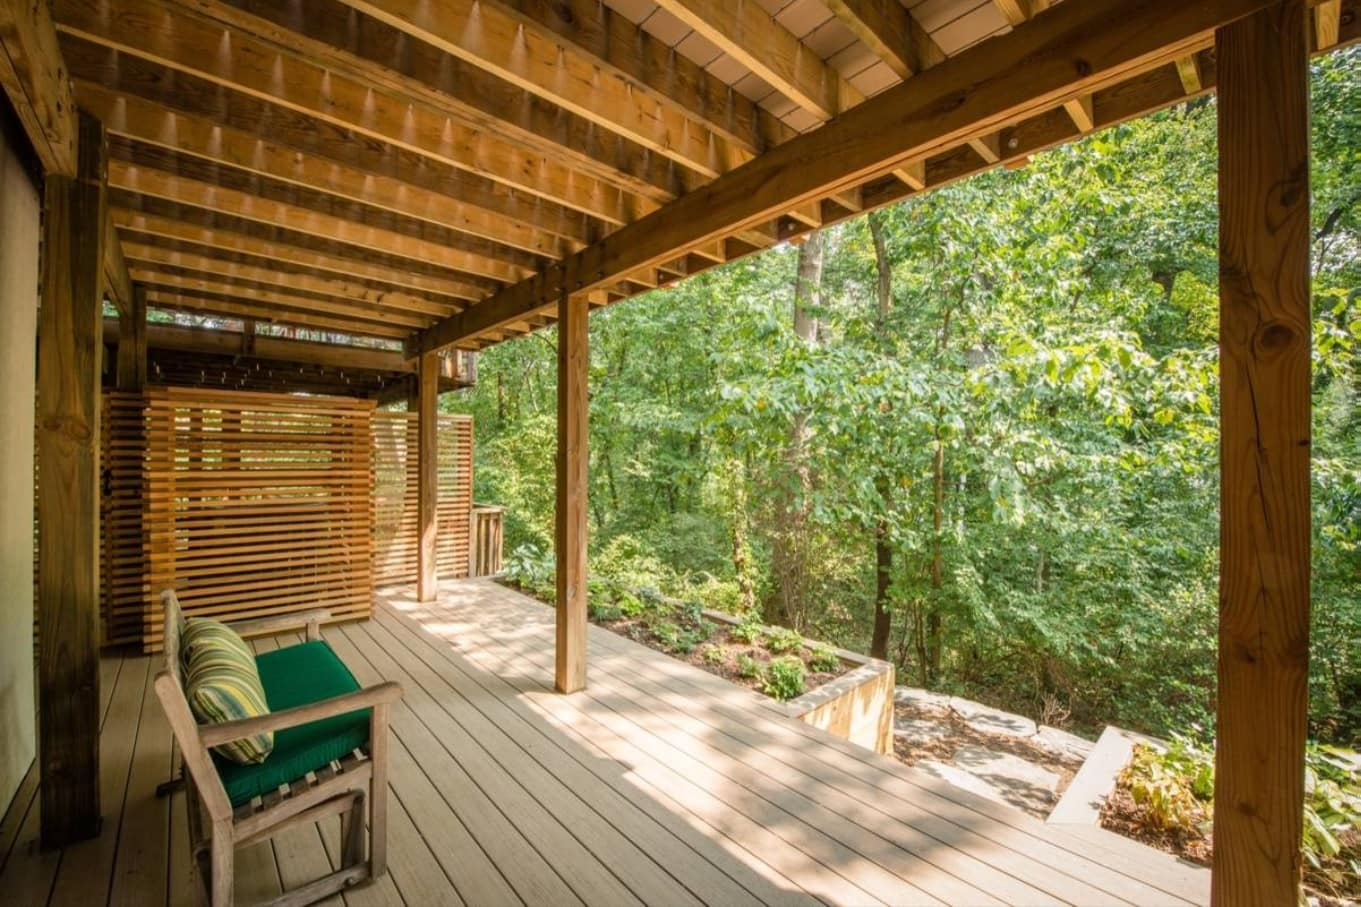 5 Unique Deck Ideas to Make the Most of Your Small Yard. Large deck with canopy with the forest view